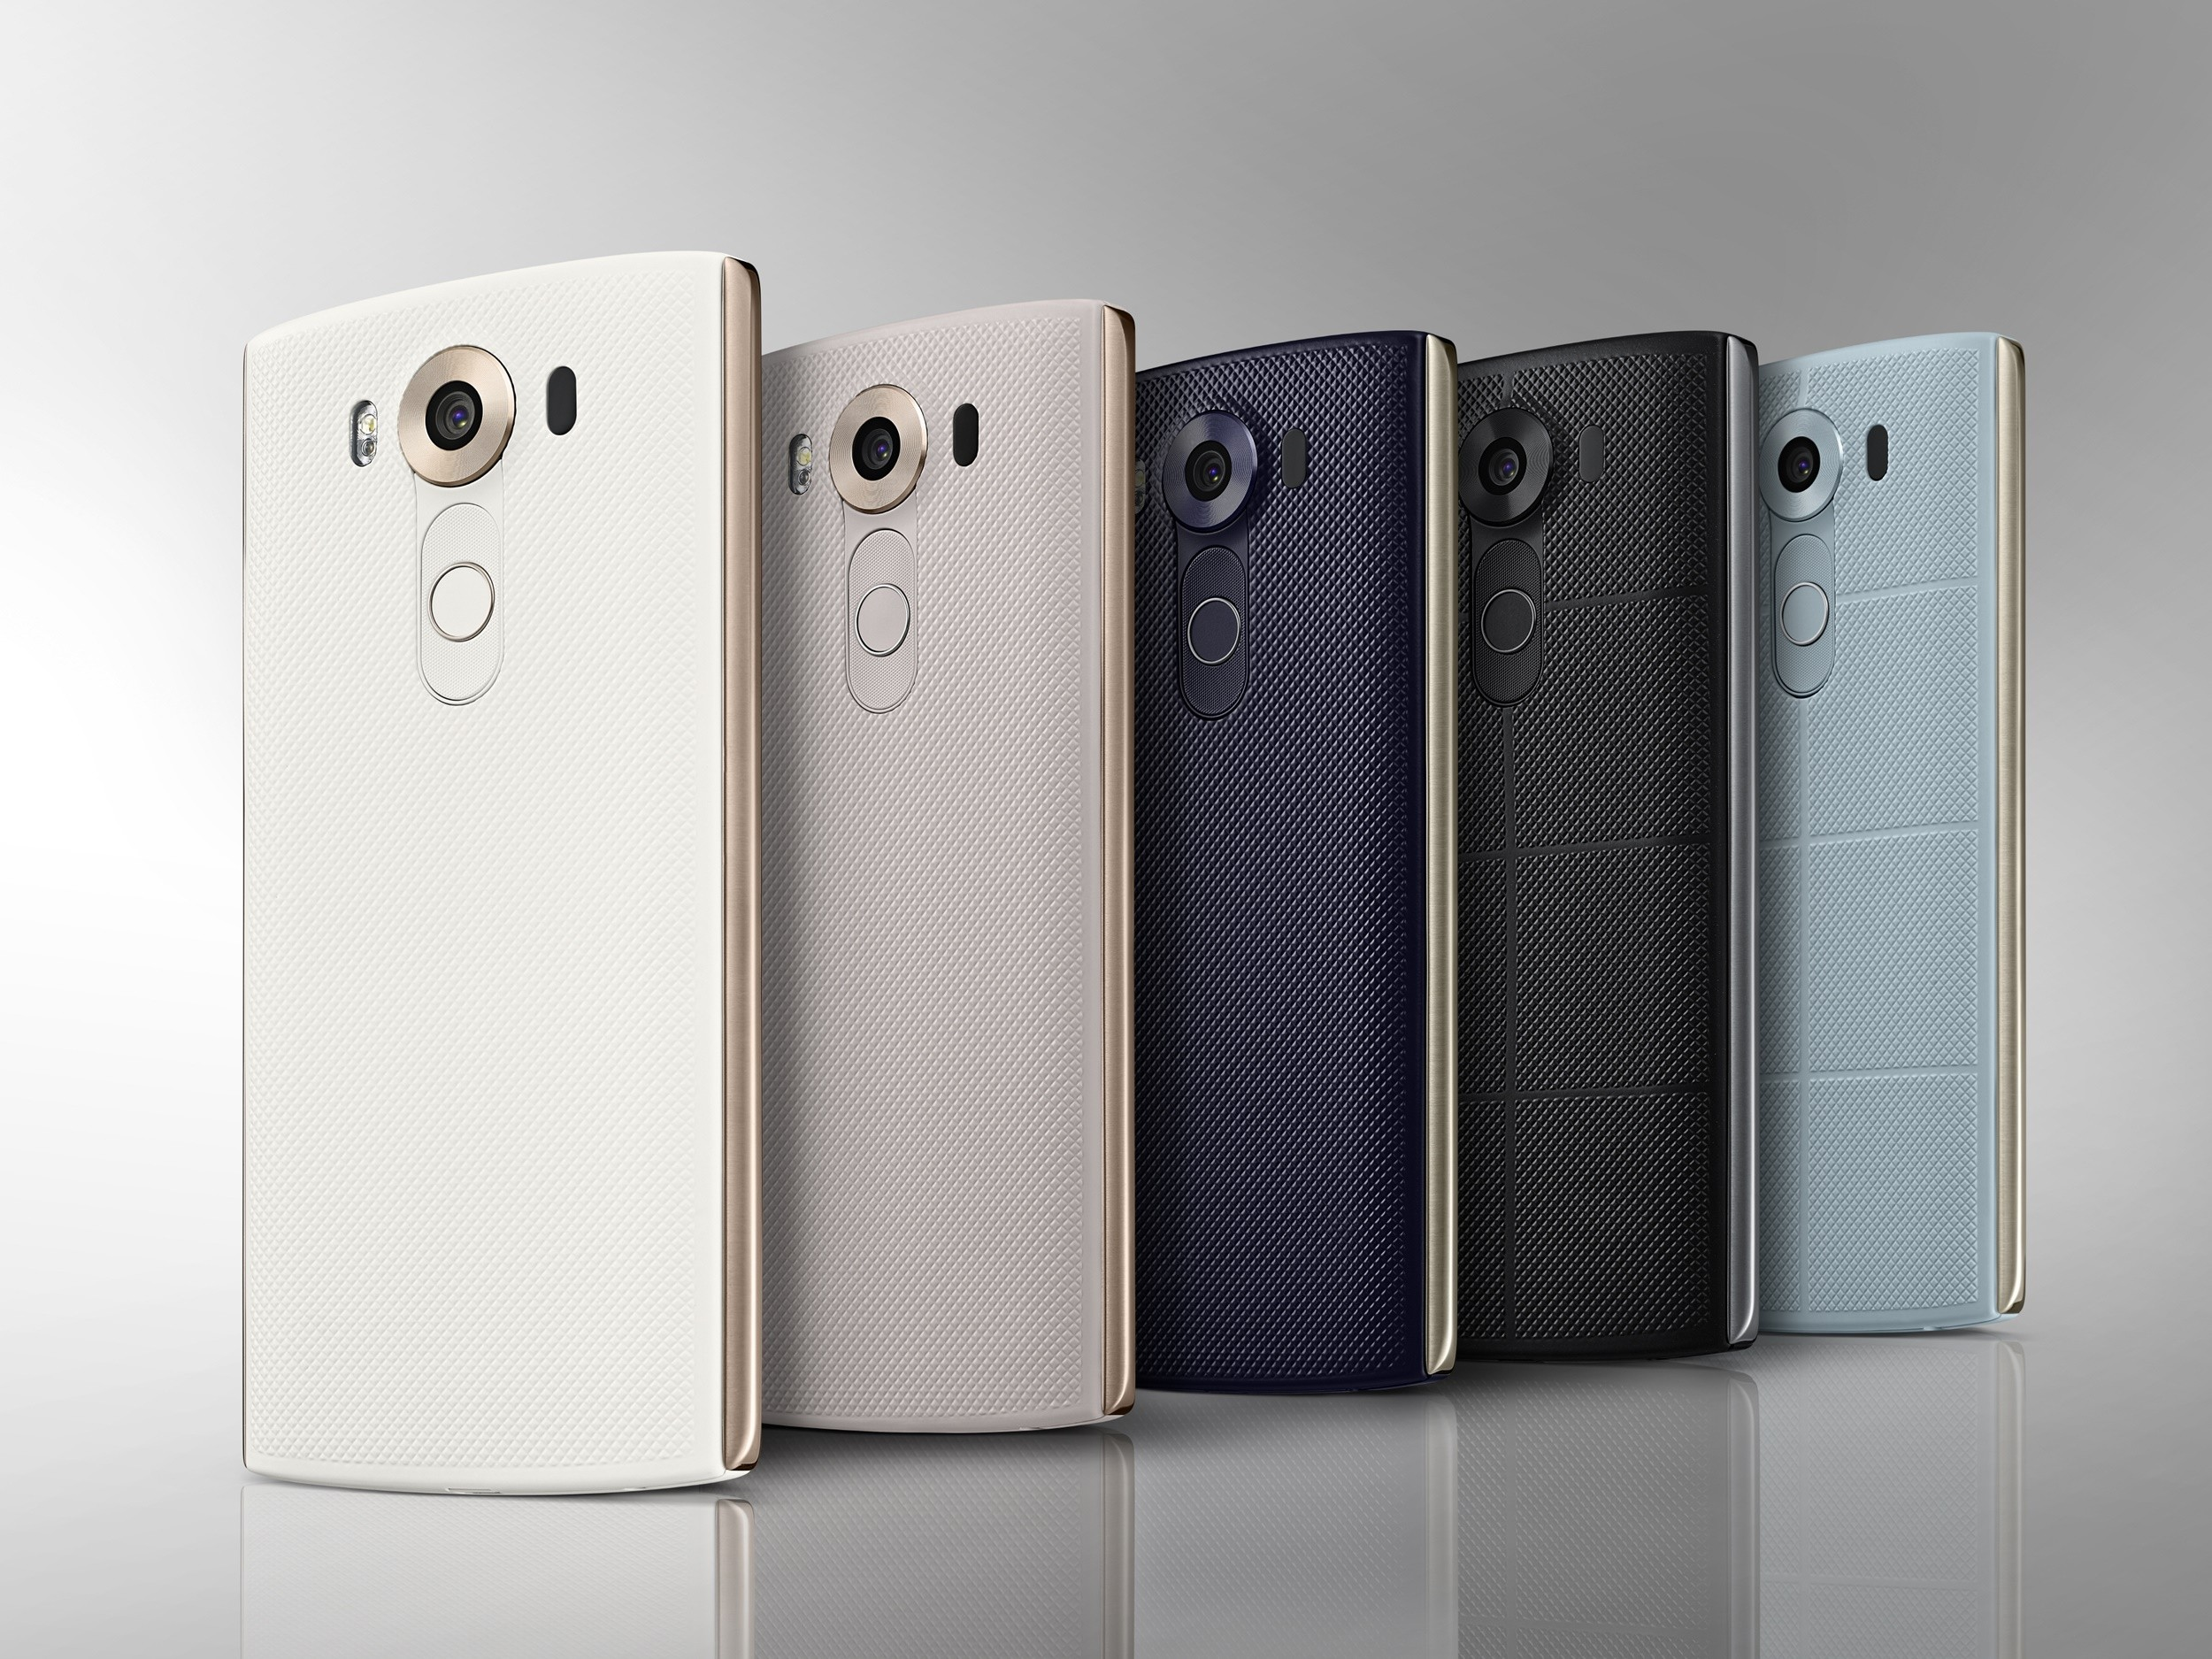 The back view of the LG V10 in Luxe White, Modern Beige, Opal Blue, Space Black and Ocean Blue